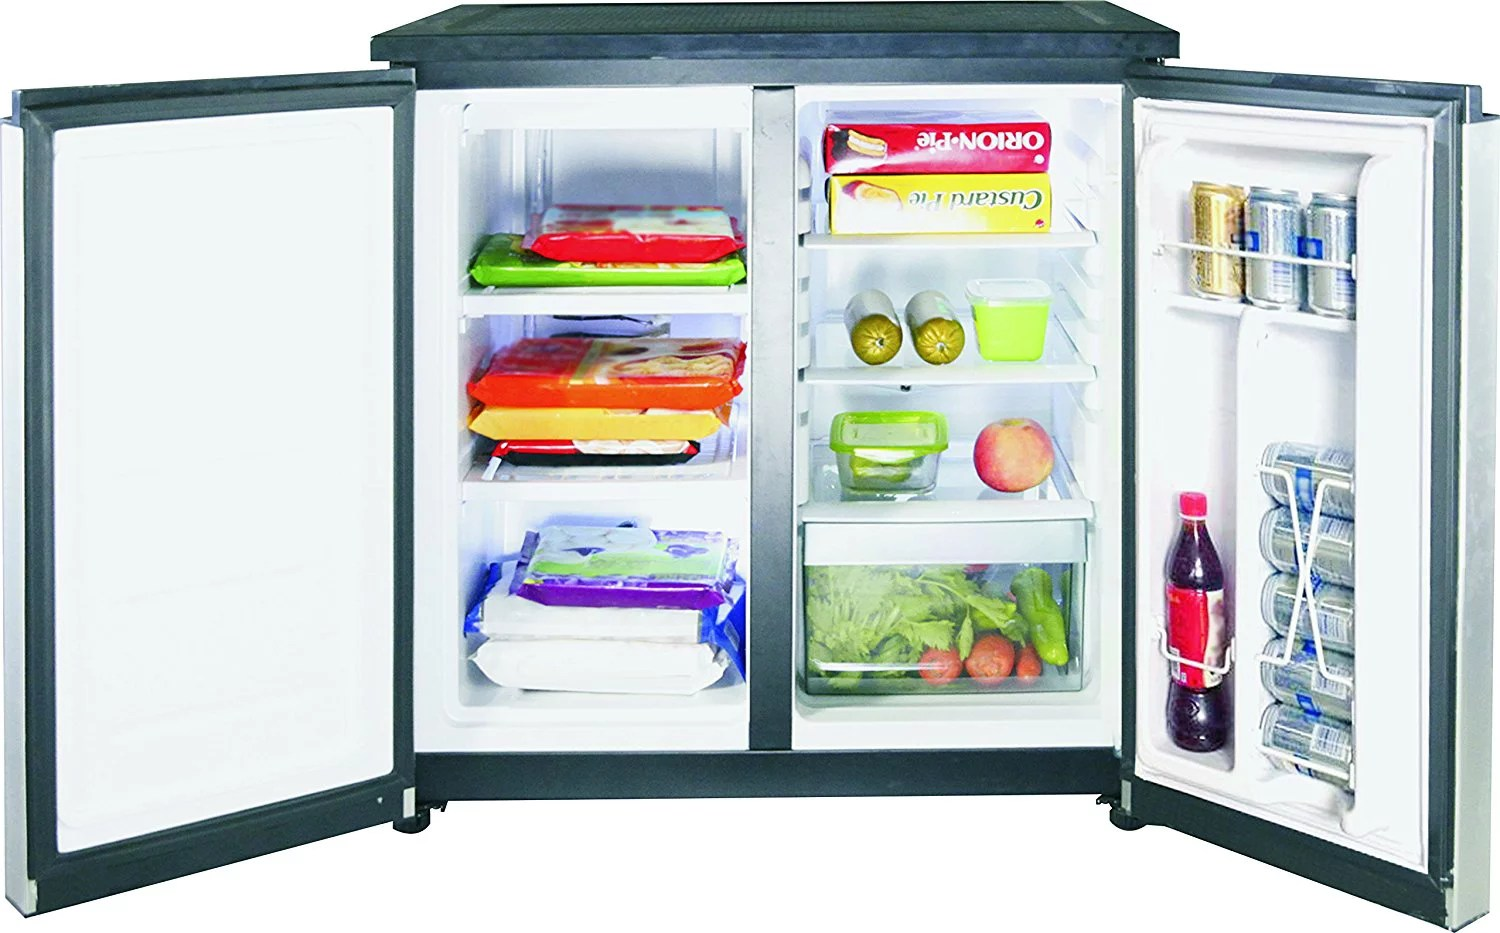 Mini Fridge And Freezer Rca 5 5 Cu Ft Side By Side 2 Door Fridge Freezer Rfr551 Stainless